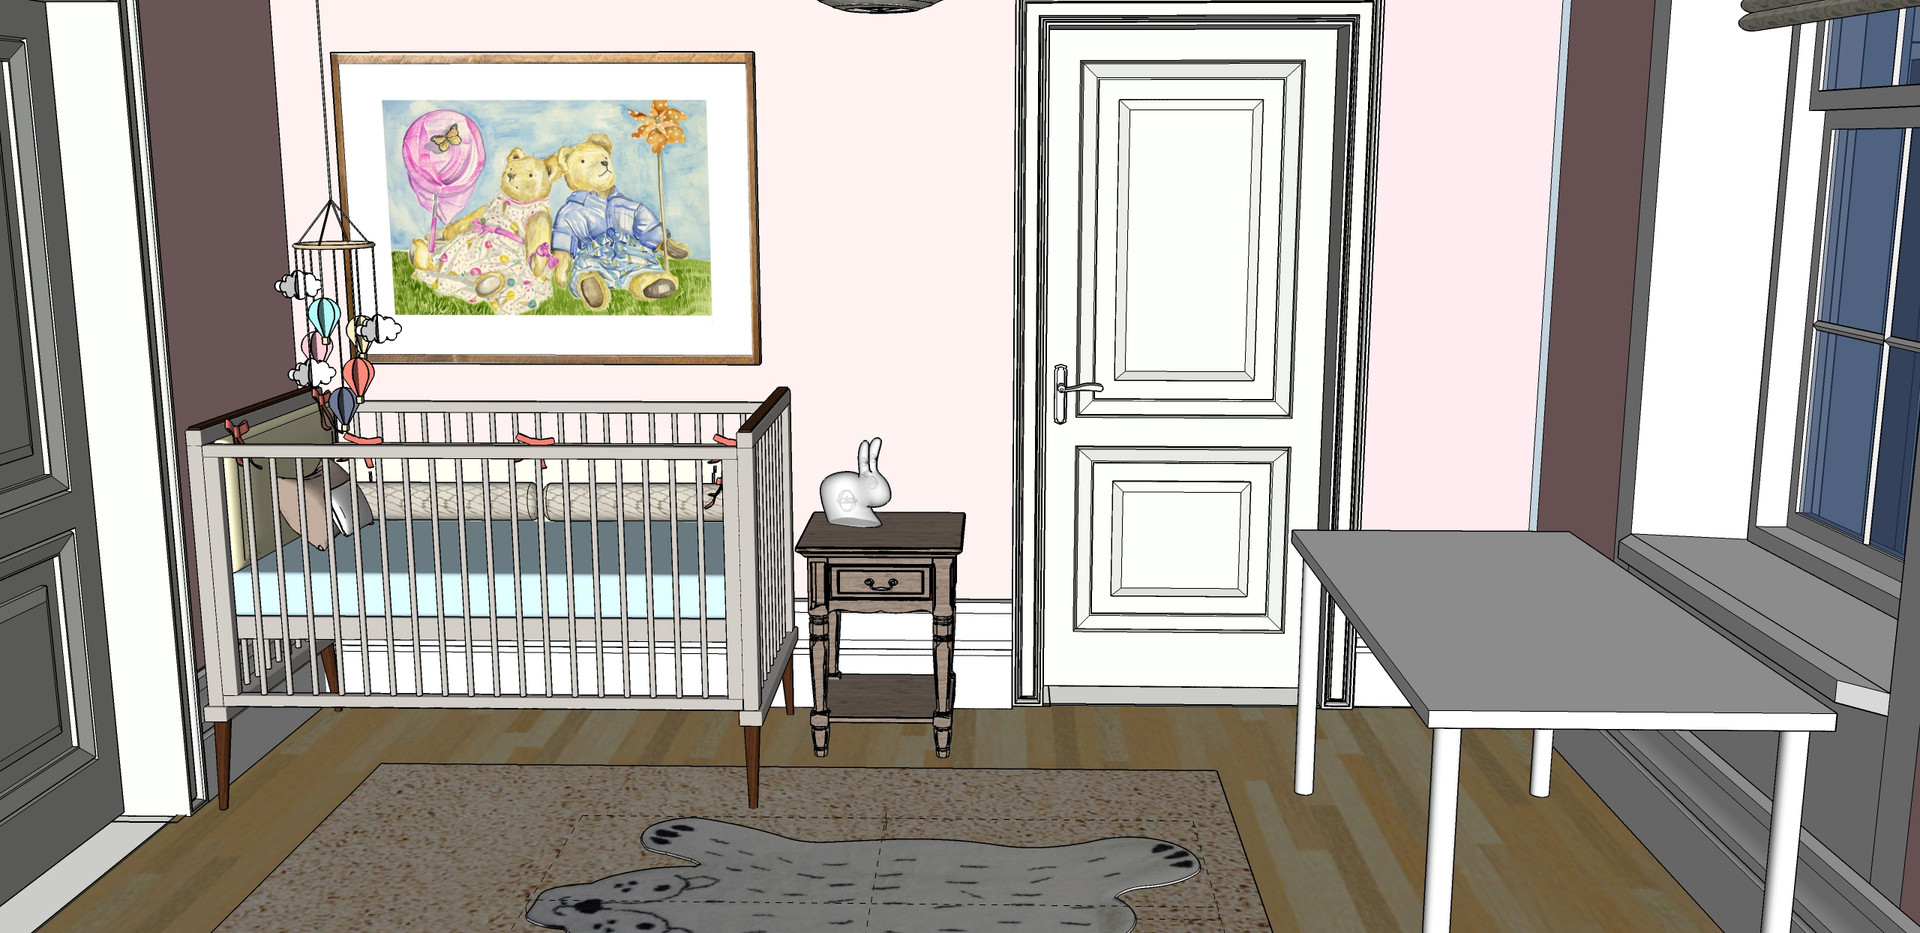 Baby Room - Furniture layout - Cot Eleva